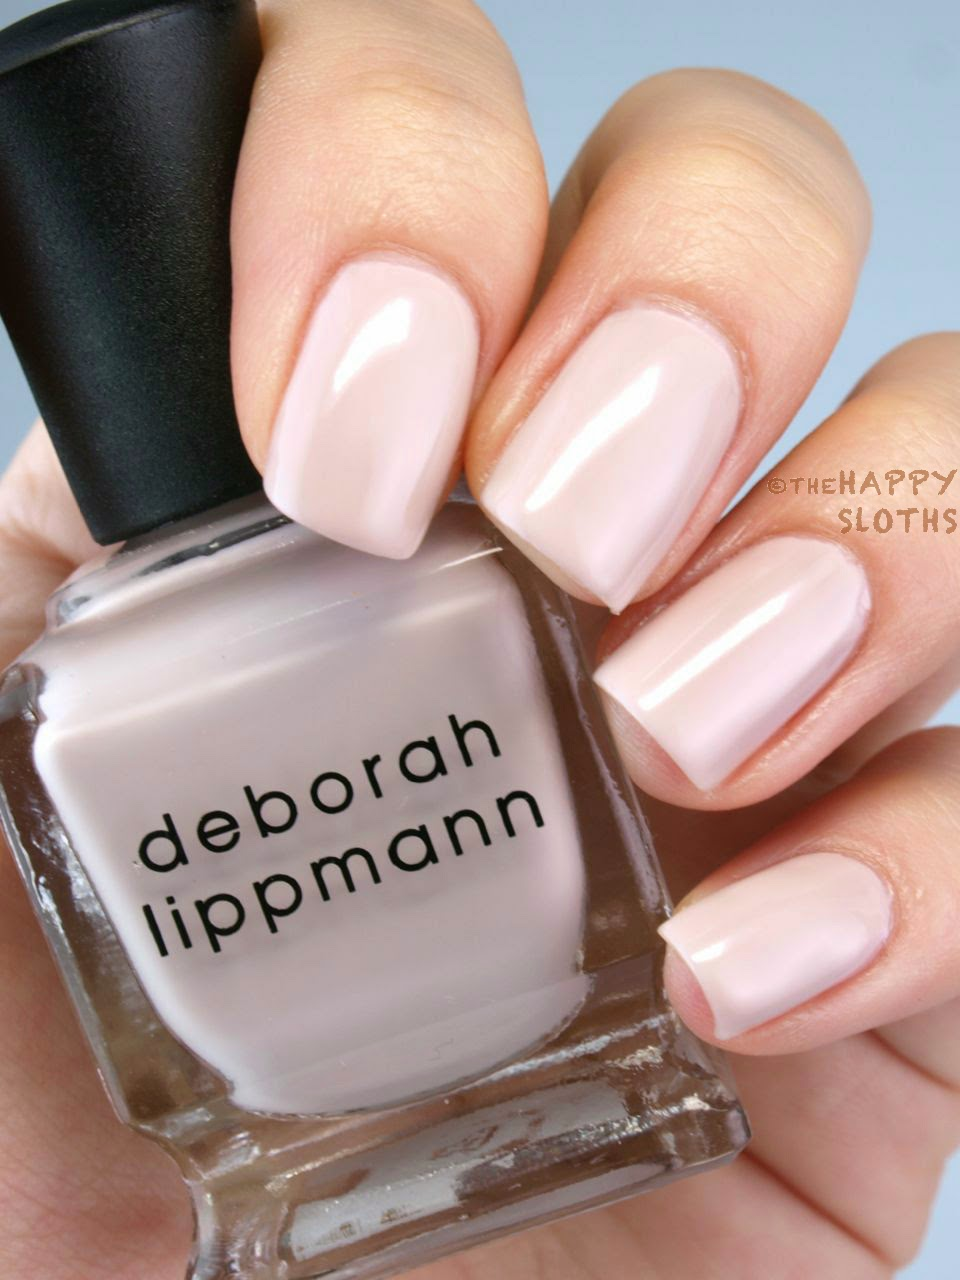 Deborah Lippmann Spring 2015 Whisper Collection Review And Swatches The Happy Sloths Beauty